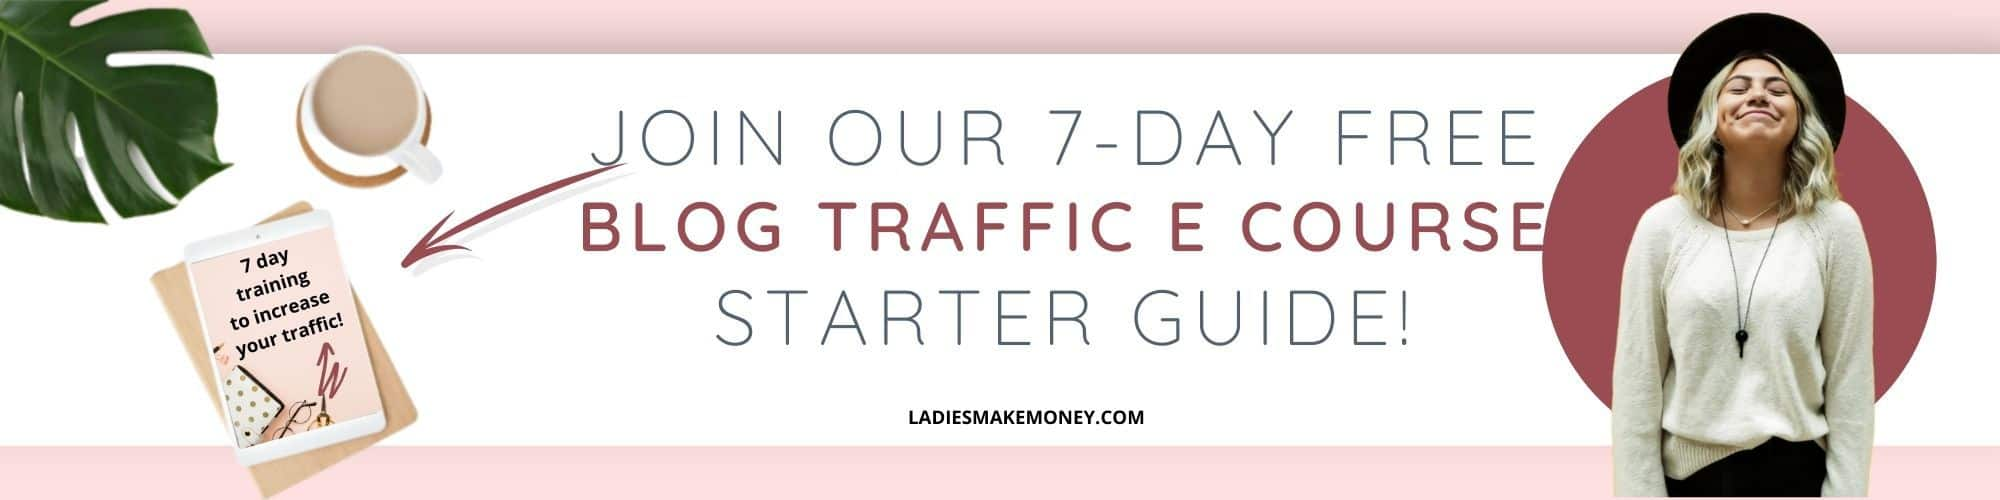 7 day blog traffic - Blog traffic ecourse!